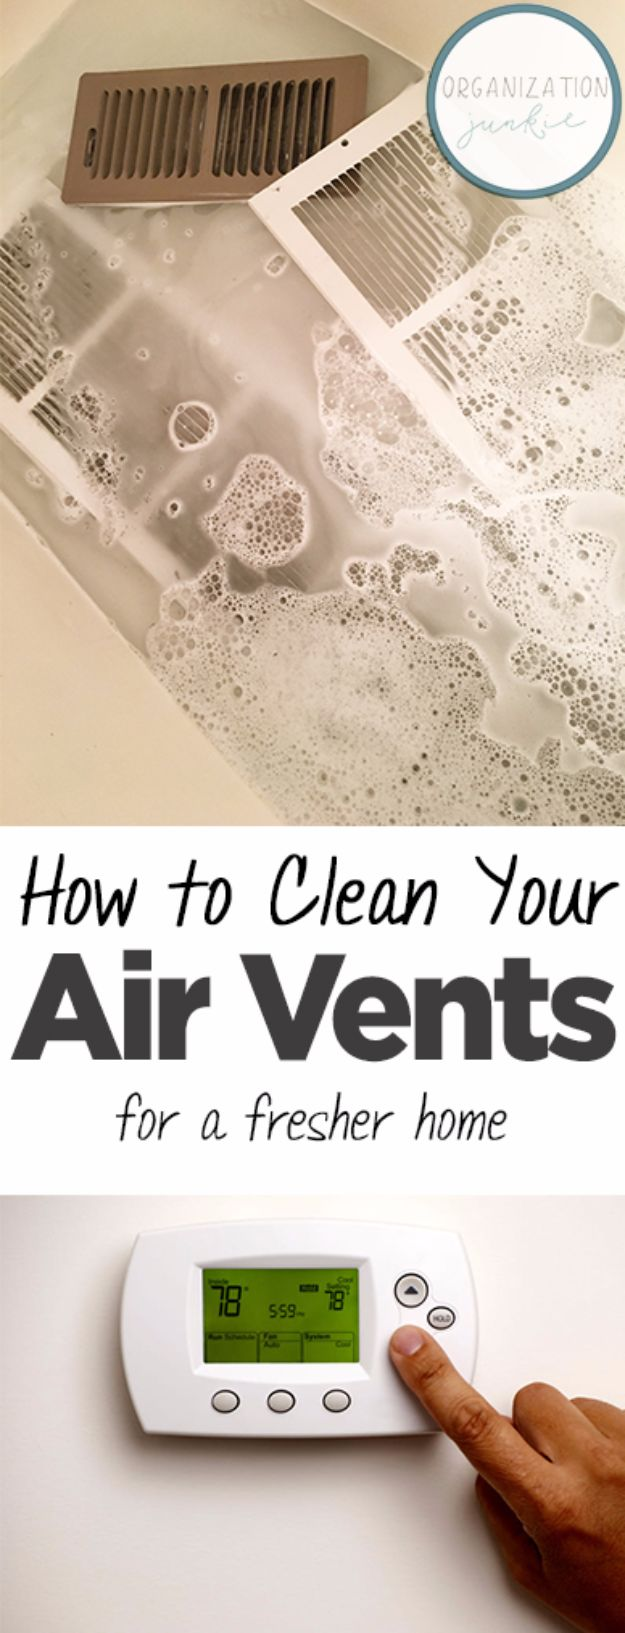 Best Spring Cleaning Ideas - Clean Your Air Vents For A Fresher Home - Easy Cleaning Tips For Home - DIY Cleaning Hacks and Product Recipes - Tips and Tricks for Cleaning the Bathroom, Kitchen, Floors and Countertops - Cheap Solutions for A Clean House #springcleaning